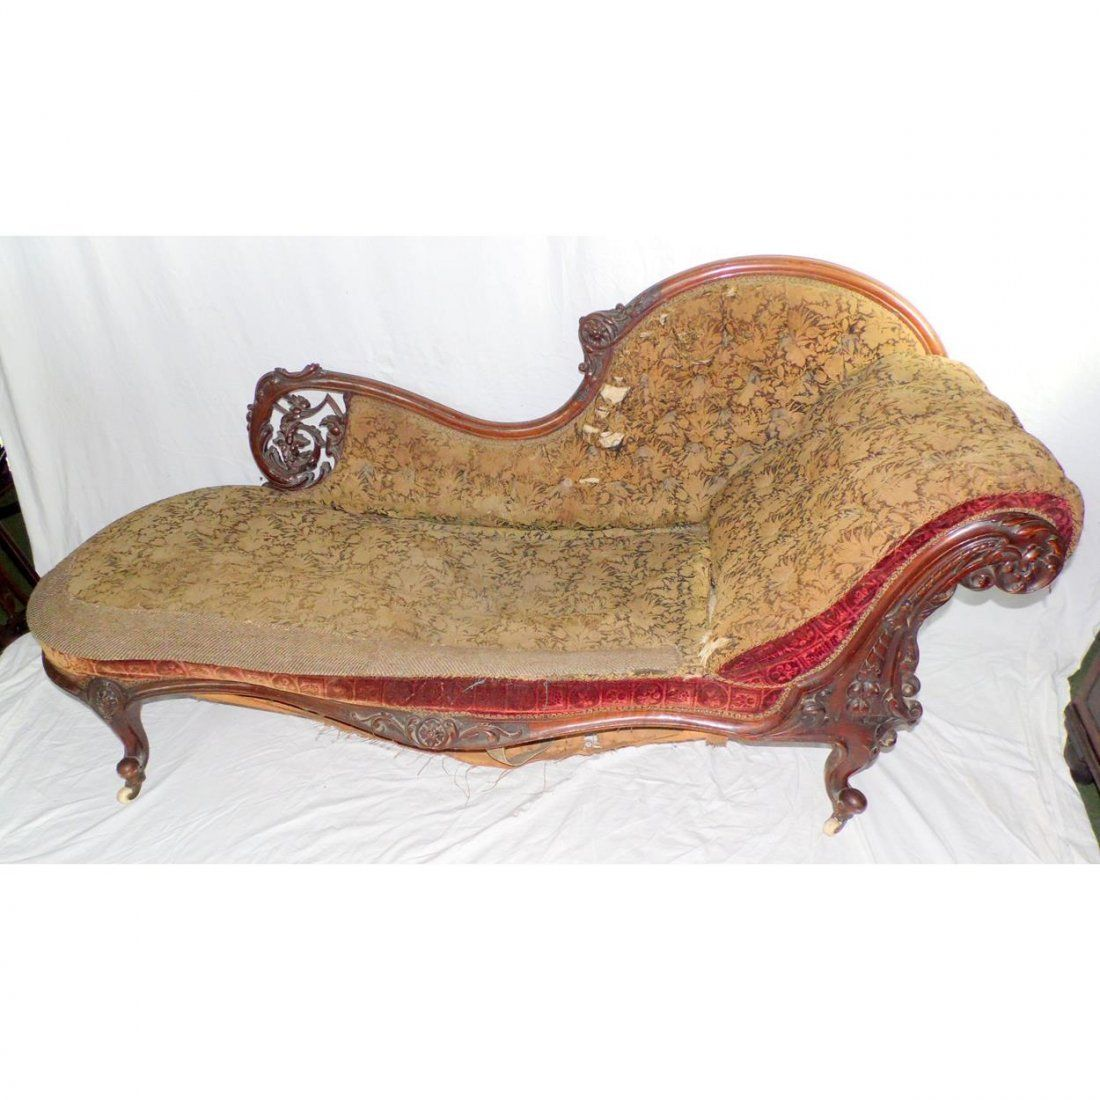 Antique English Victorian Chaise Longue Feb 22 2020 Cooper Barrington Llp In United Kingdom